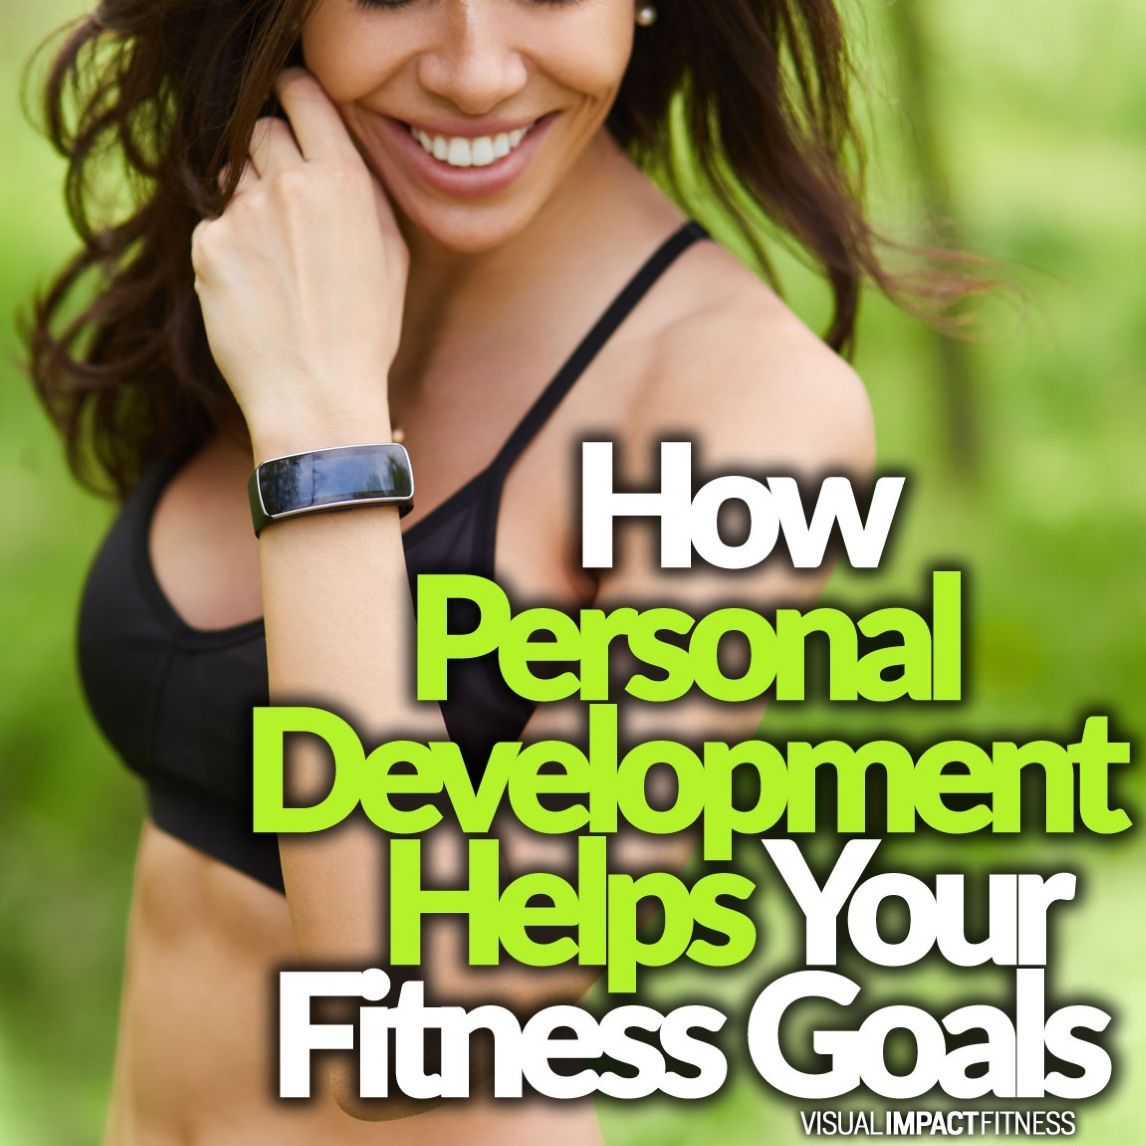 How Personal Development Helps Your Fitness Goals